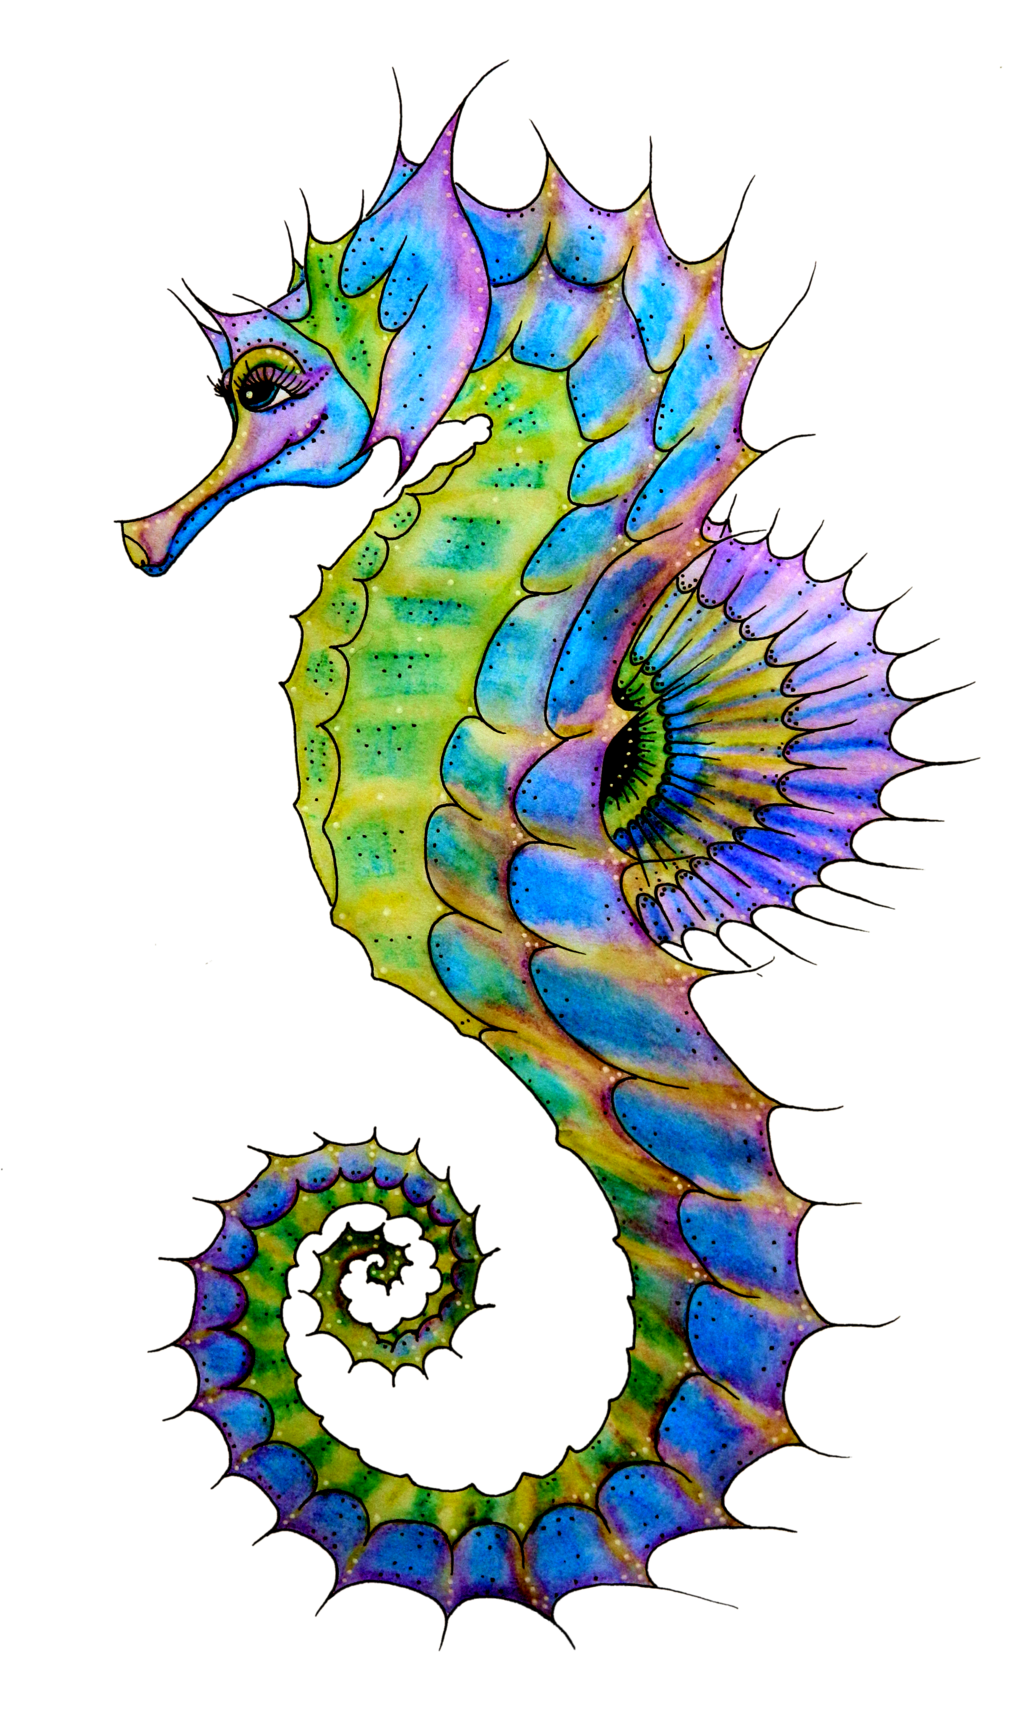 Png hd sea creatures. Drawing seahorse cute vector royalty free download